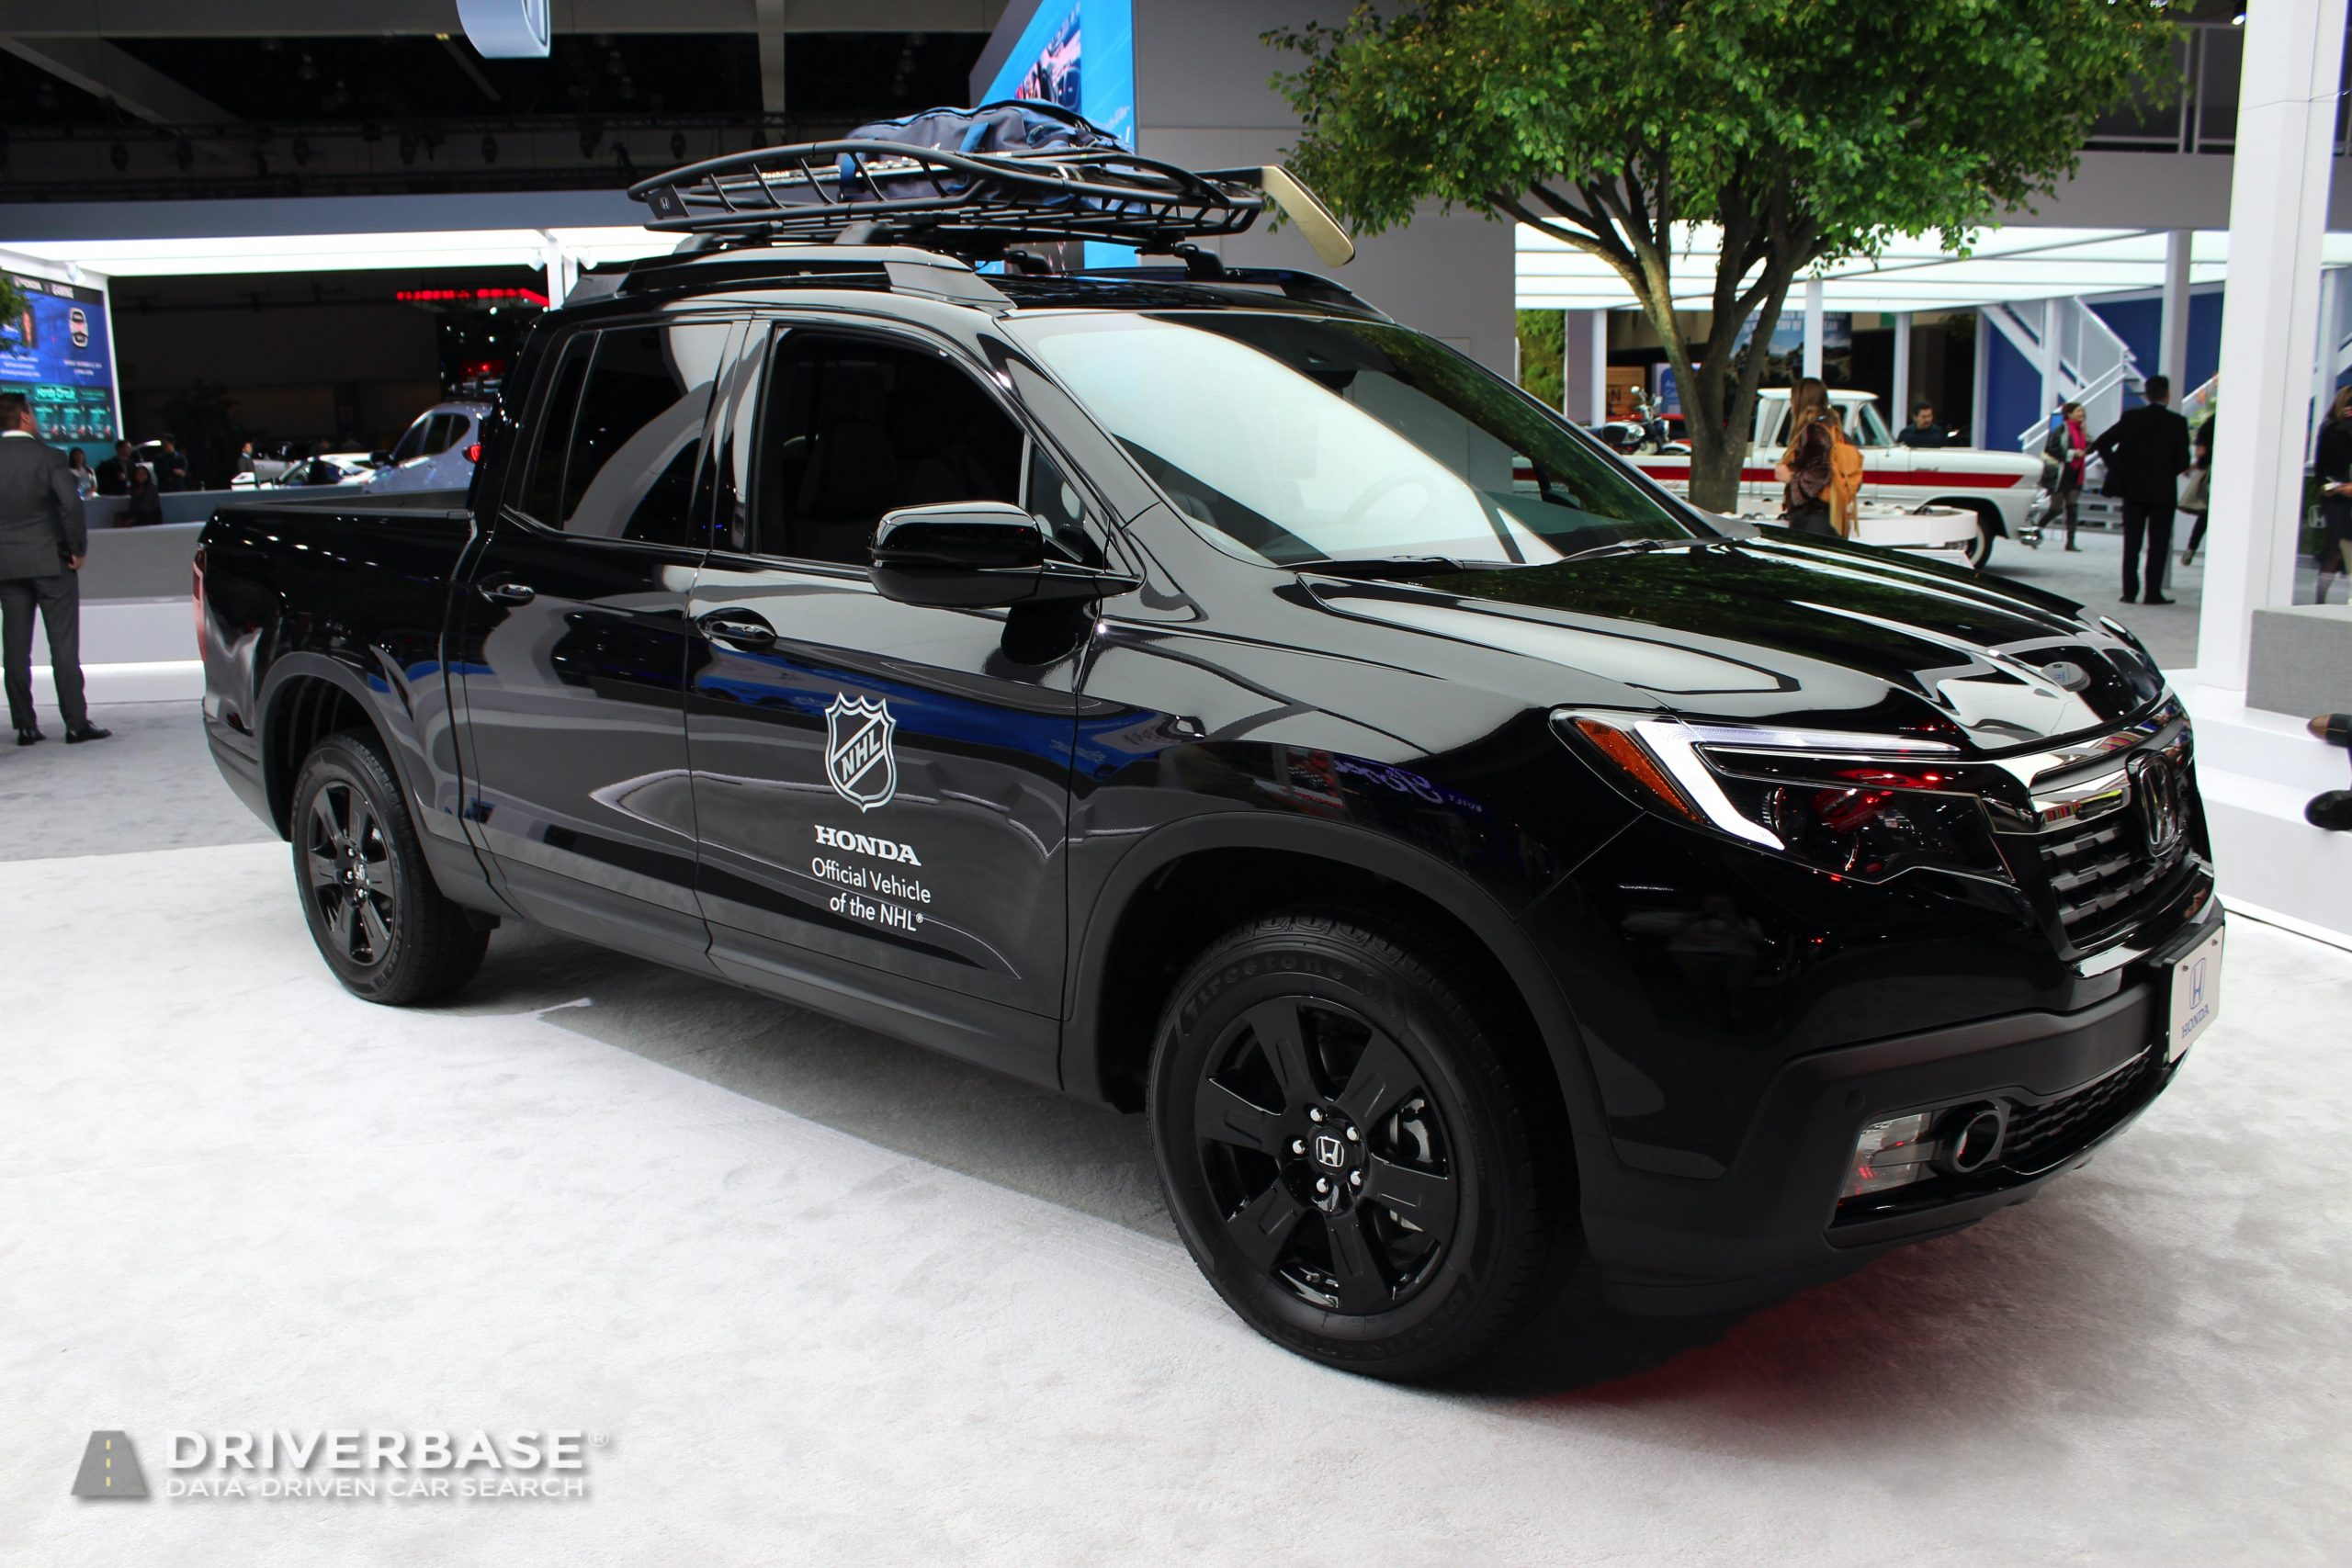 2020 Honda Ridgeline All Wheel Drive at the 2019 Los Angeles Auto Show